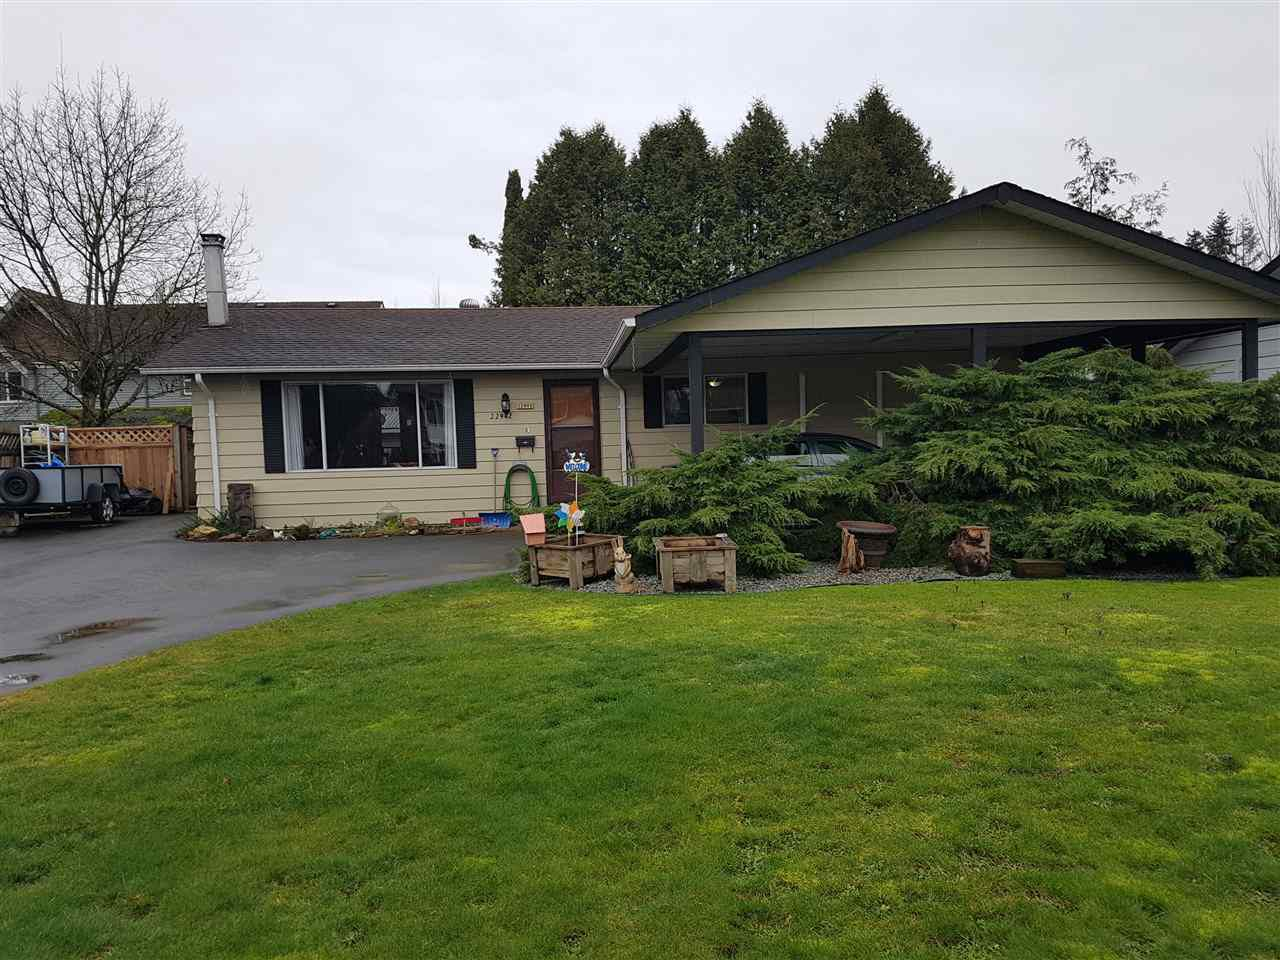 Main Photo: 22942 GILLEY Avenue in Maple Ridge: East Central House for sale : MLS®# R2240174